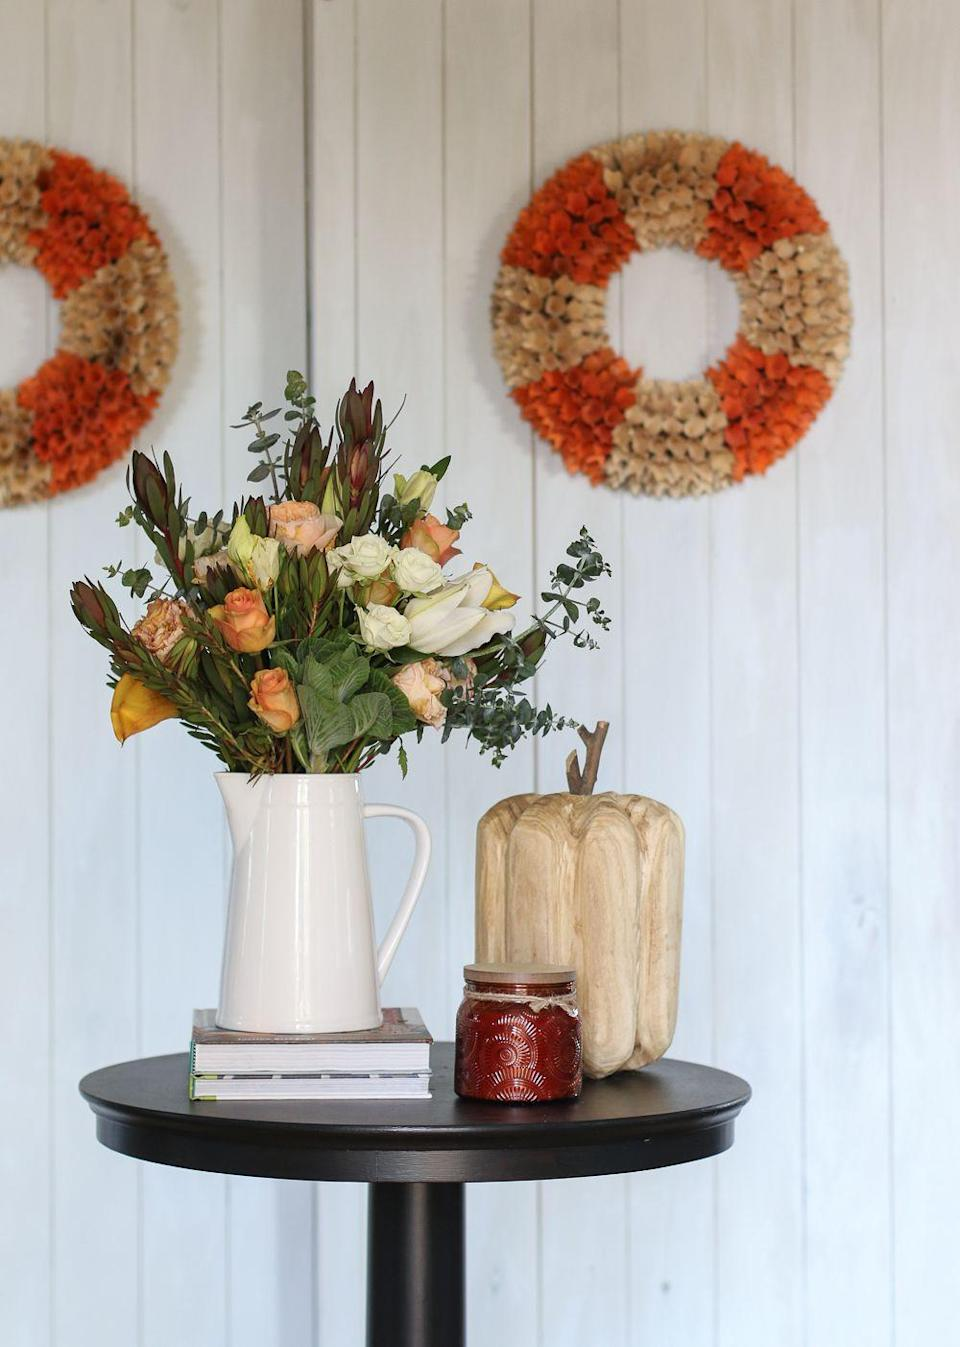 """<p>On white wood walls, blogger Michael Wurm Jr. of <a href=""""http://inspiredbycharm.com/2016/09/fall-entertaining-around-my-house-tour.html"""" rel=""""nofollow noopener"""" target=""""_blank"""" data-ylk=""""slk:Inspired by Charm"""" class=""""link rapid-noclick-resp"""">Inspired by Charm</a> decorated his <a href=""""https://www.elledecor.com/shopping/furniture/g9872267/entryway-tables/"""" rel=""""nofollow noopener"""" target=""""_blank"""" data-ylk=""""slk:entryway"""" class=""""link rapid-noclick-resp"""">entryway</a> for fall with two matching wreaths. Guests are greeted by a rose-filled floral arrangement in an array of autumn shades, and a carved wooden pumpkin. </p>"""